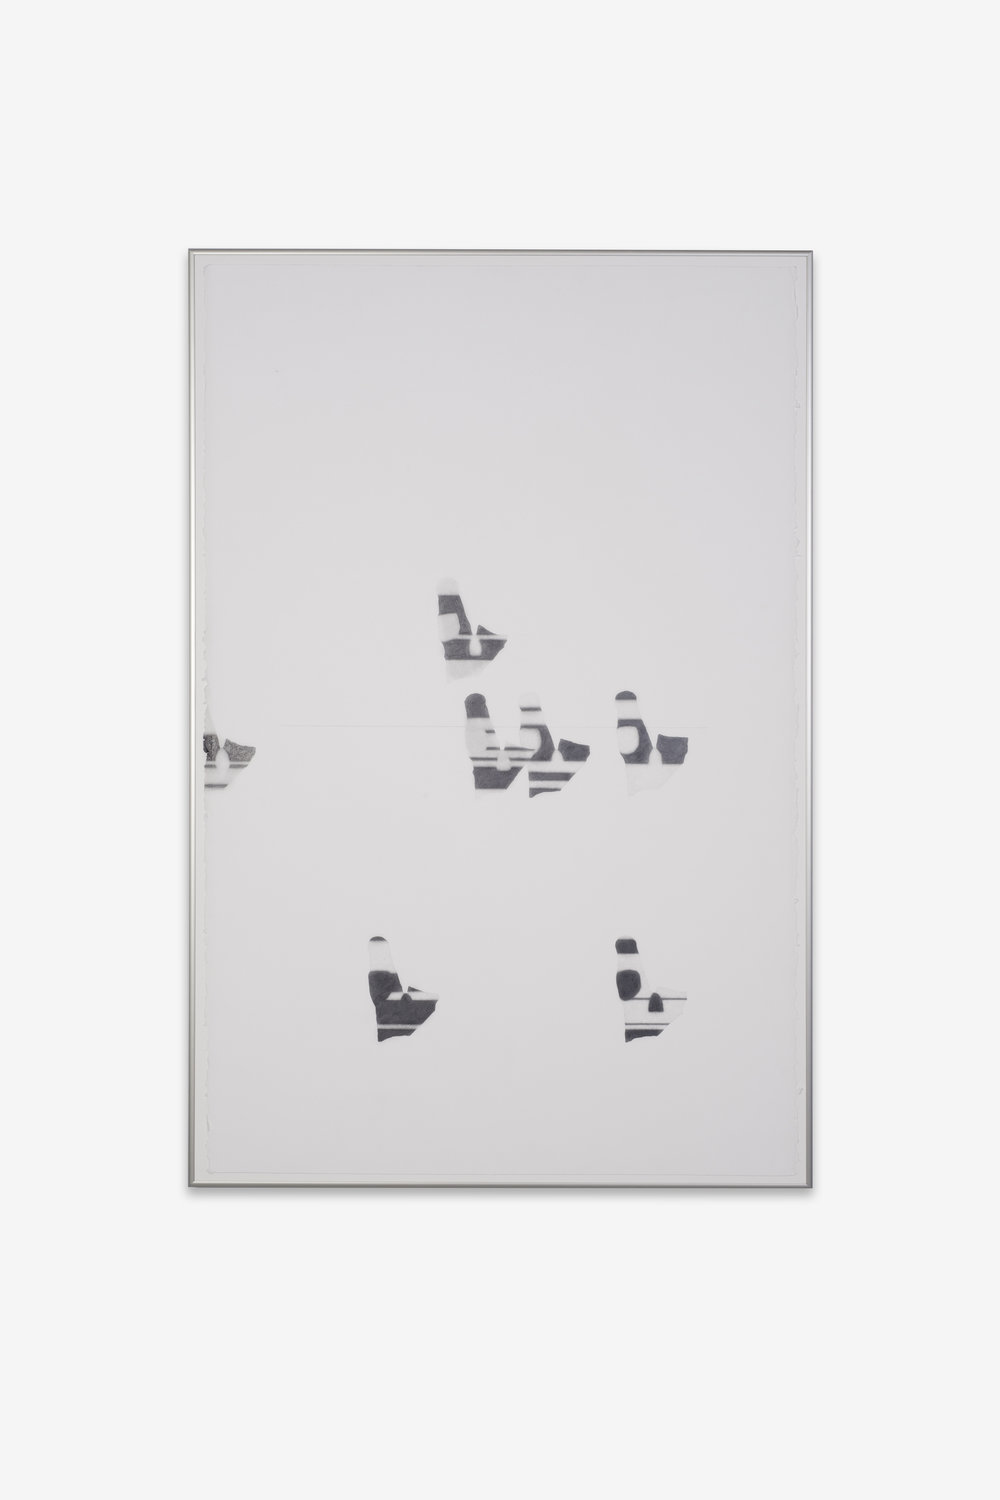 Laura Figa,  Untitled , 2018, graphite drawing on paper, 26 x 40 inches